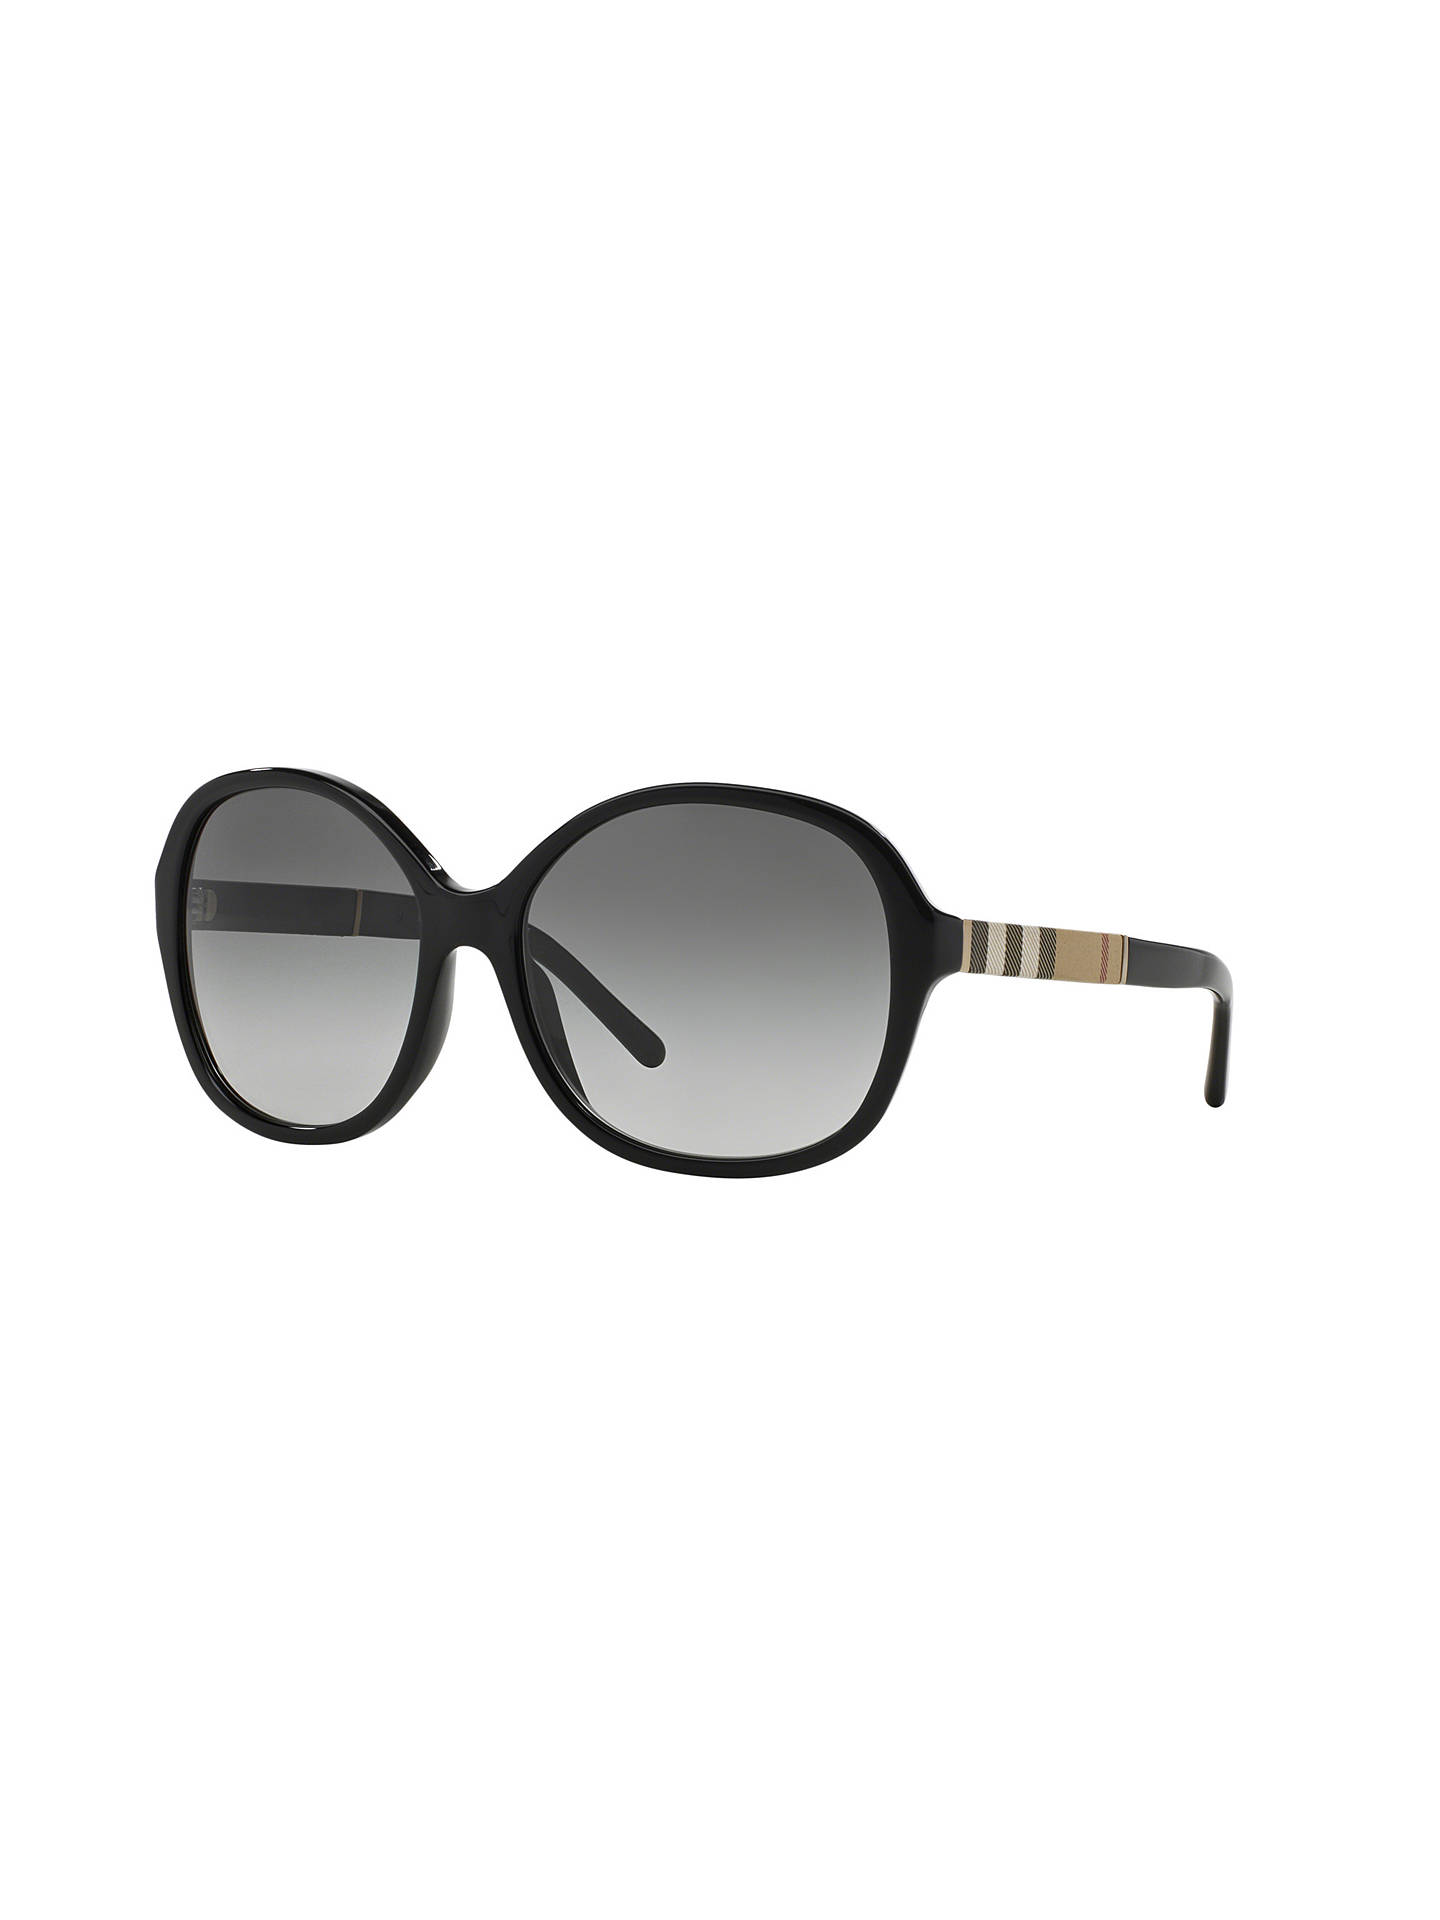 6fc799a5ab898 Buy Burberry BE4178 Round Sunglasses